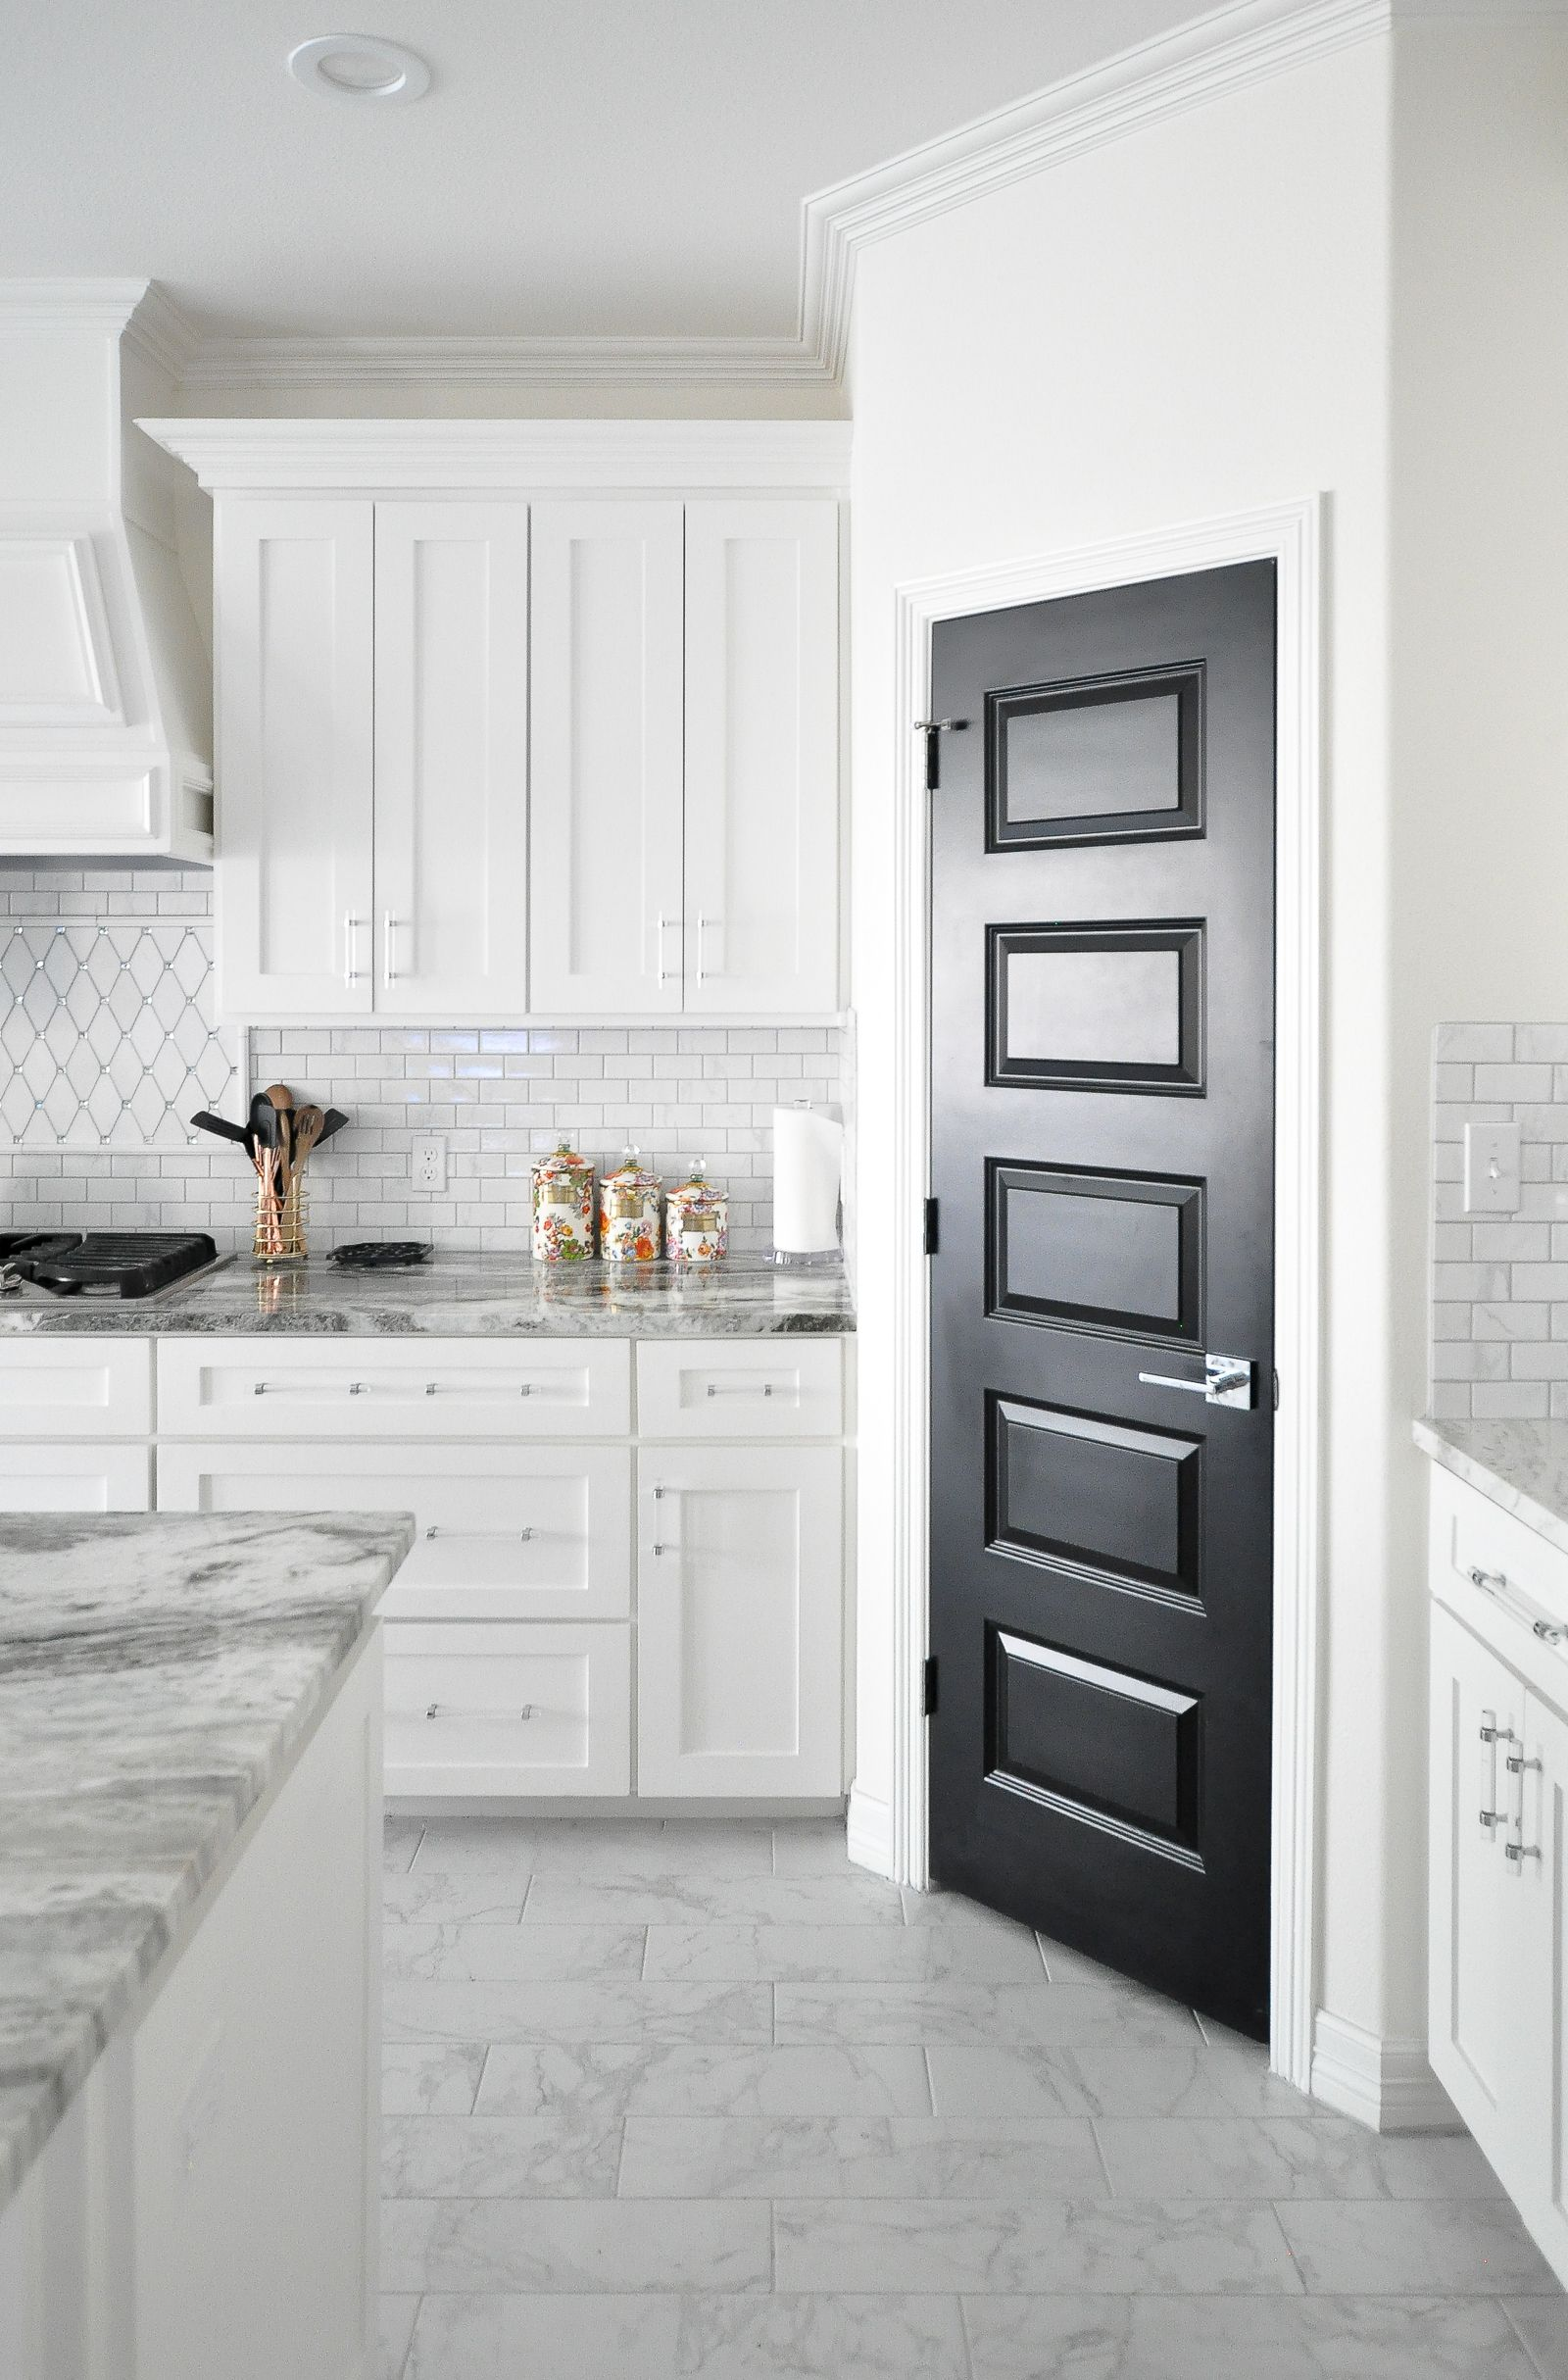 Incroyable Lucite Hardware For Less Than $4 Each! Love How They Look In This Gorgeous  White Shaker Cabinet Kitchen With Marble Backsplash, And A Black Pantry  Door.